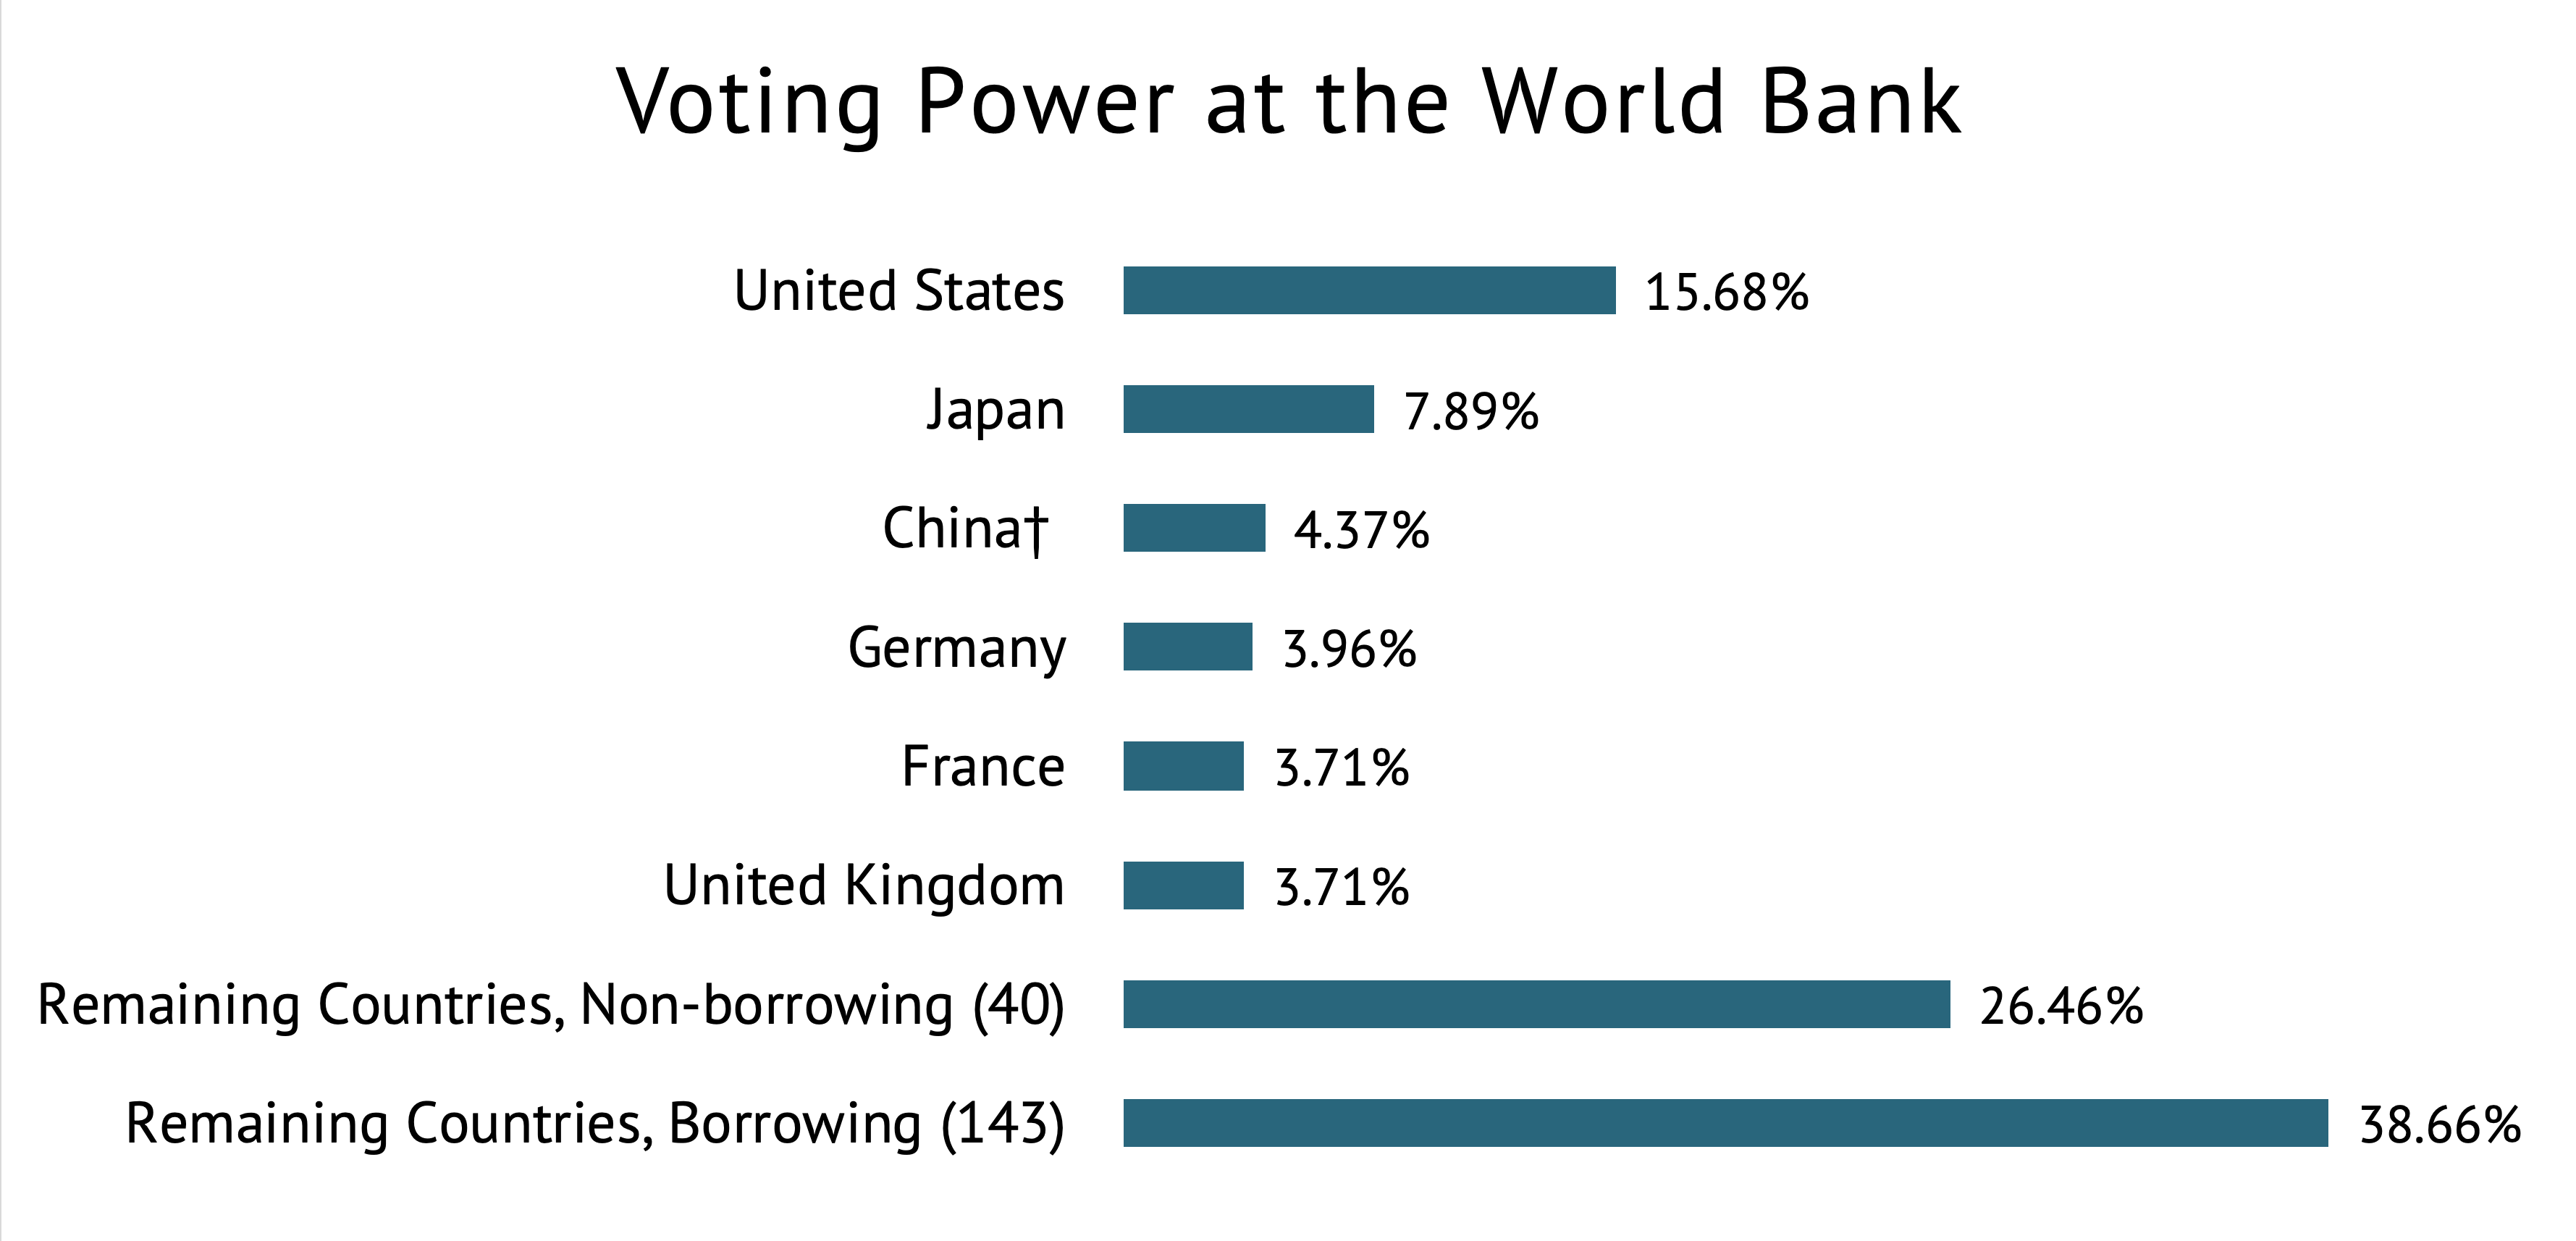 A graph showing voting power distribution at the World Bank